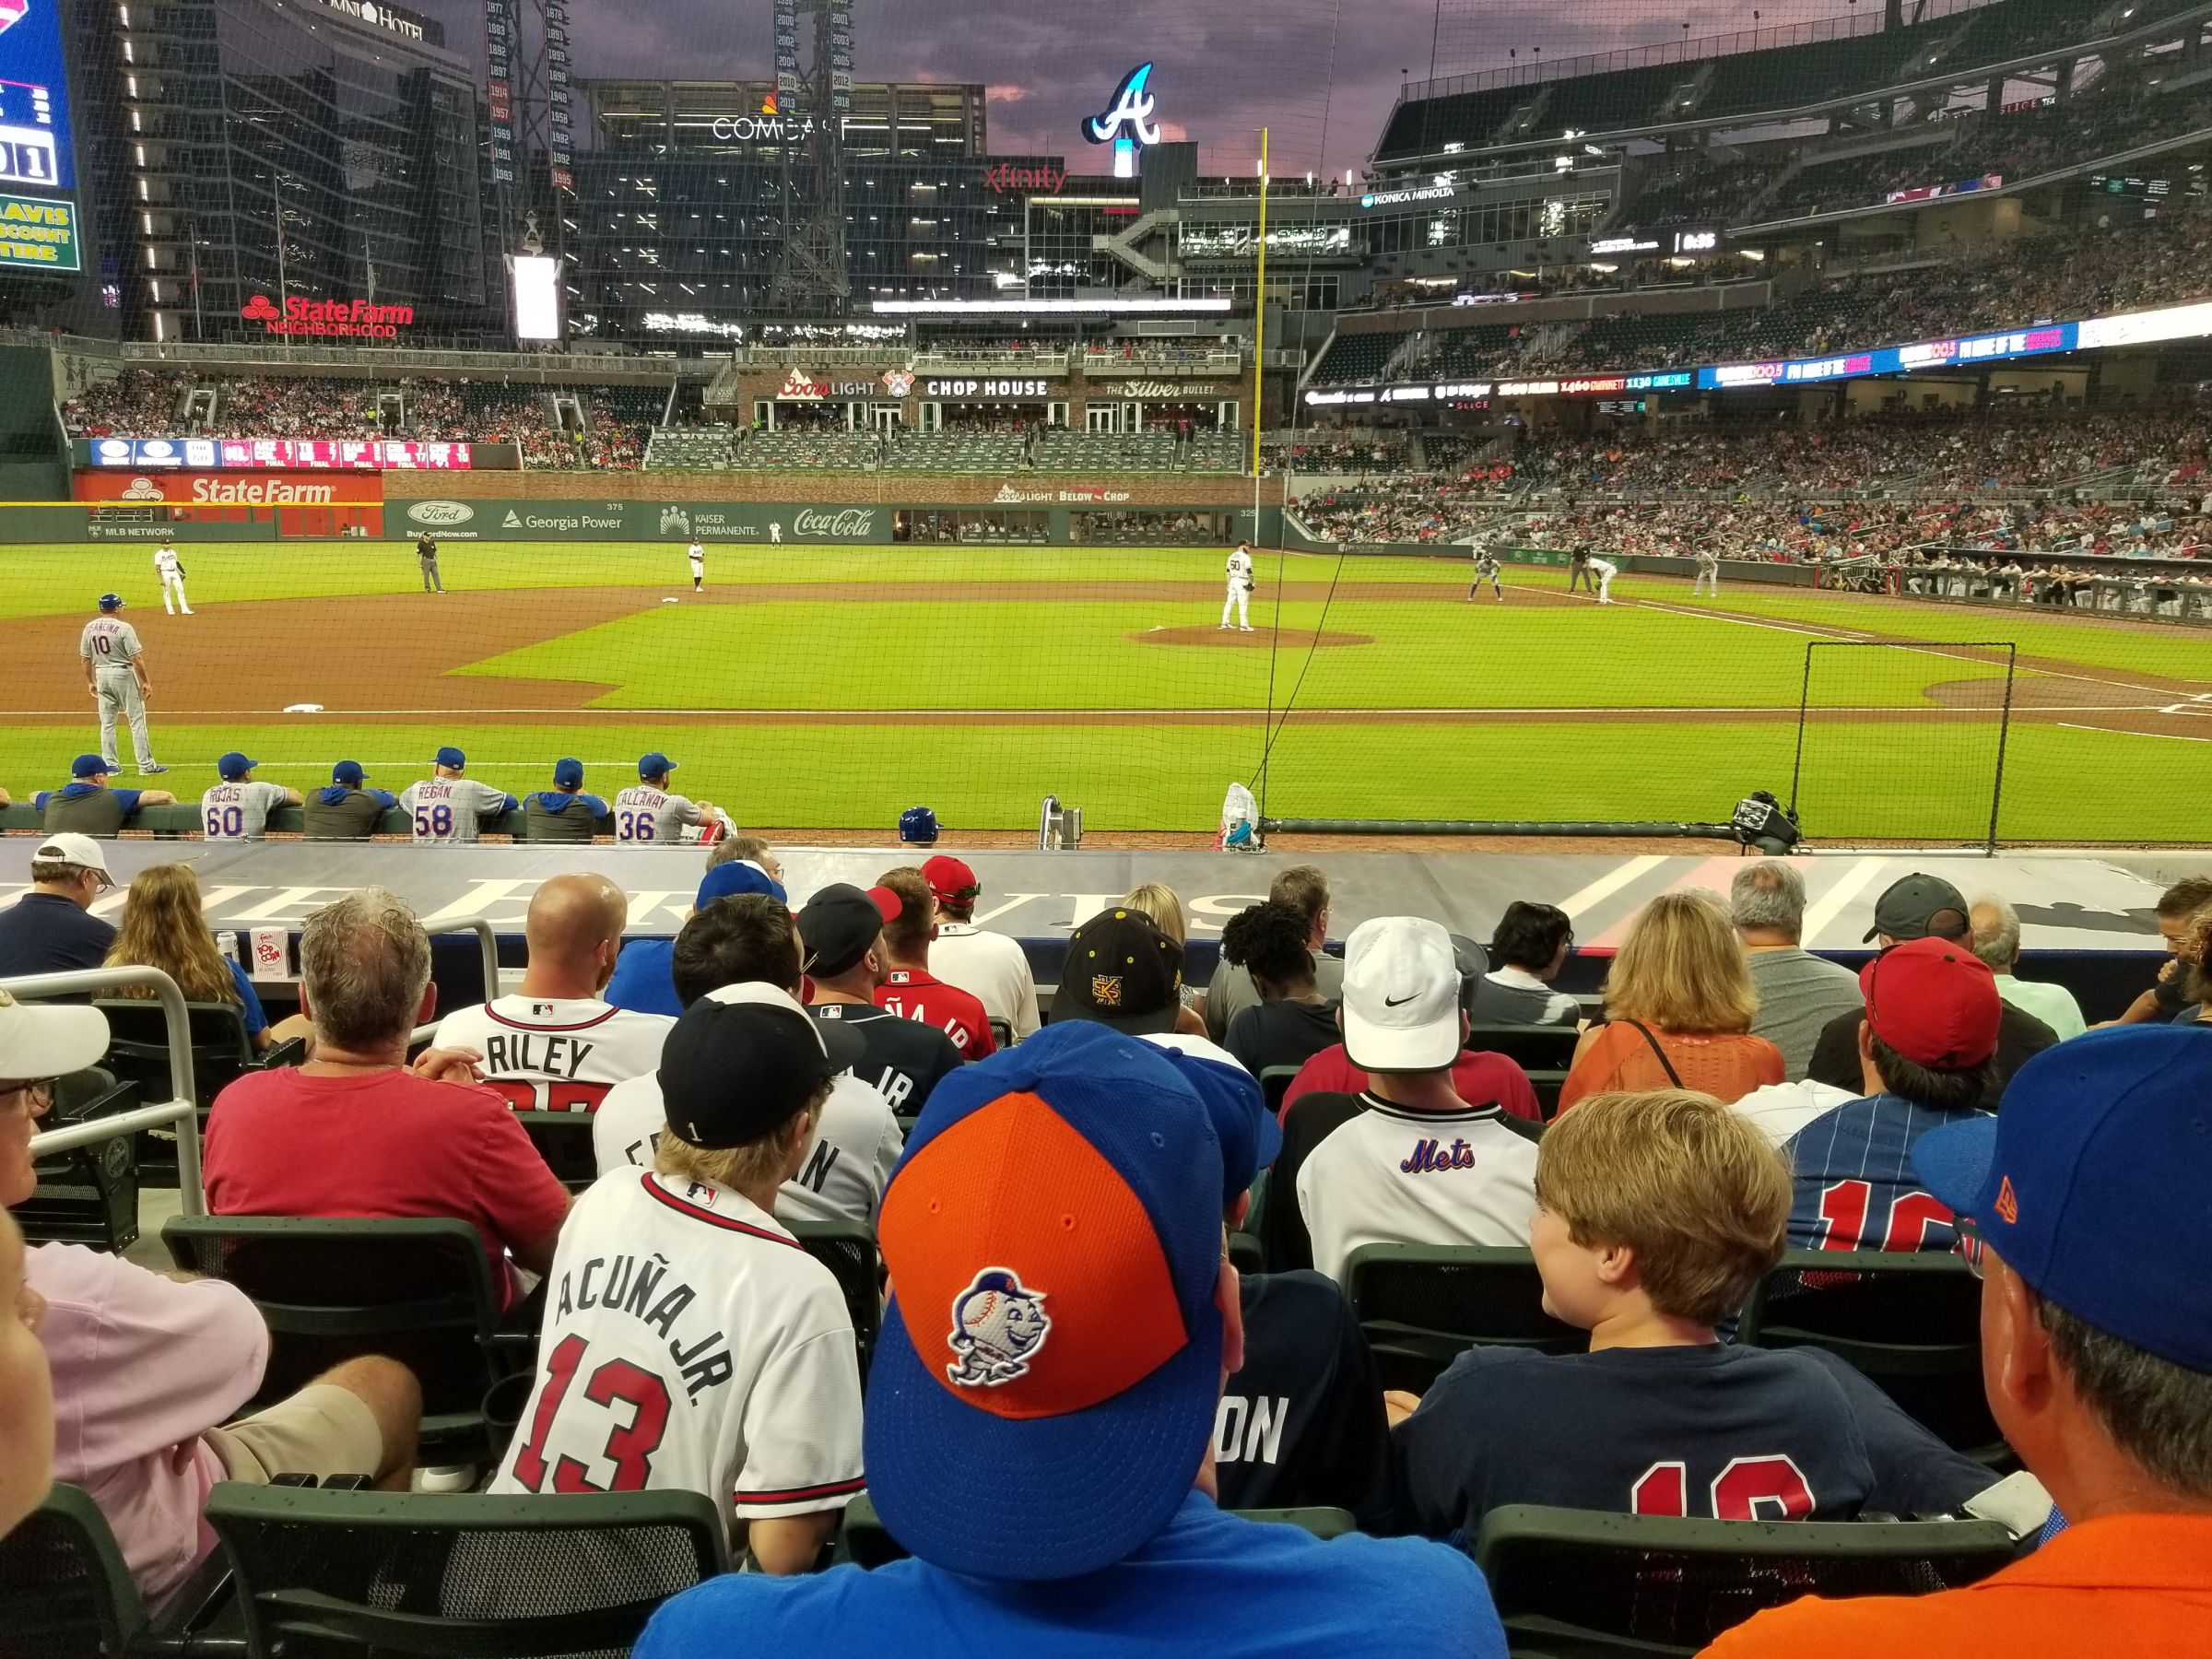 Section 31 seat view